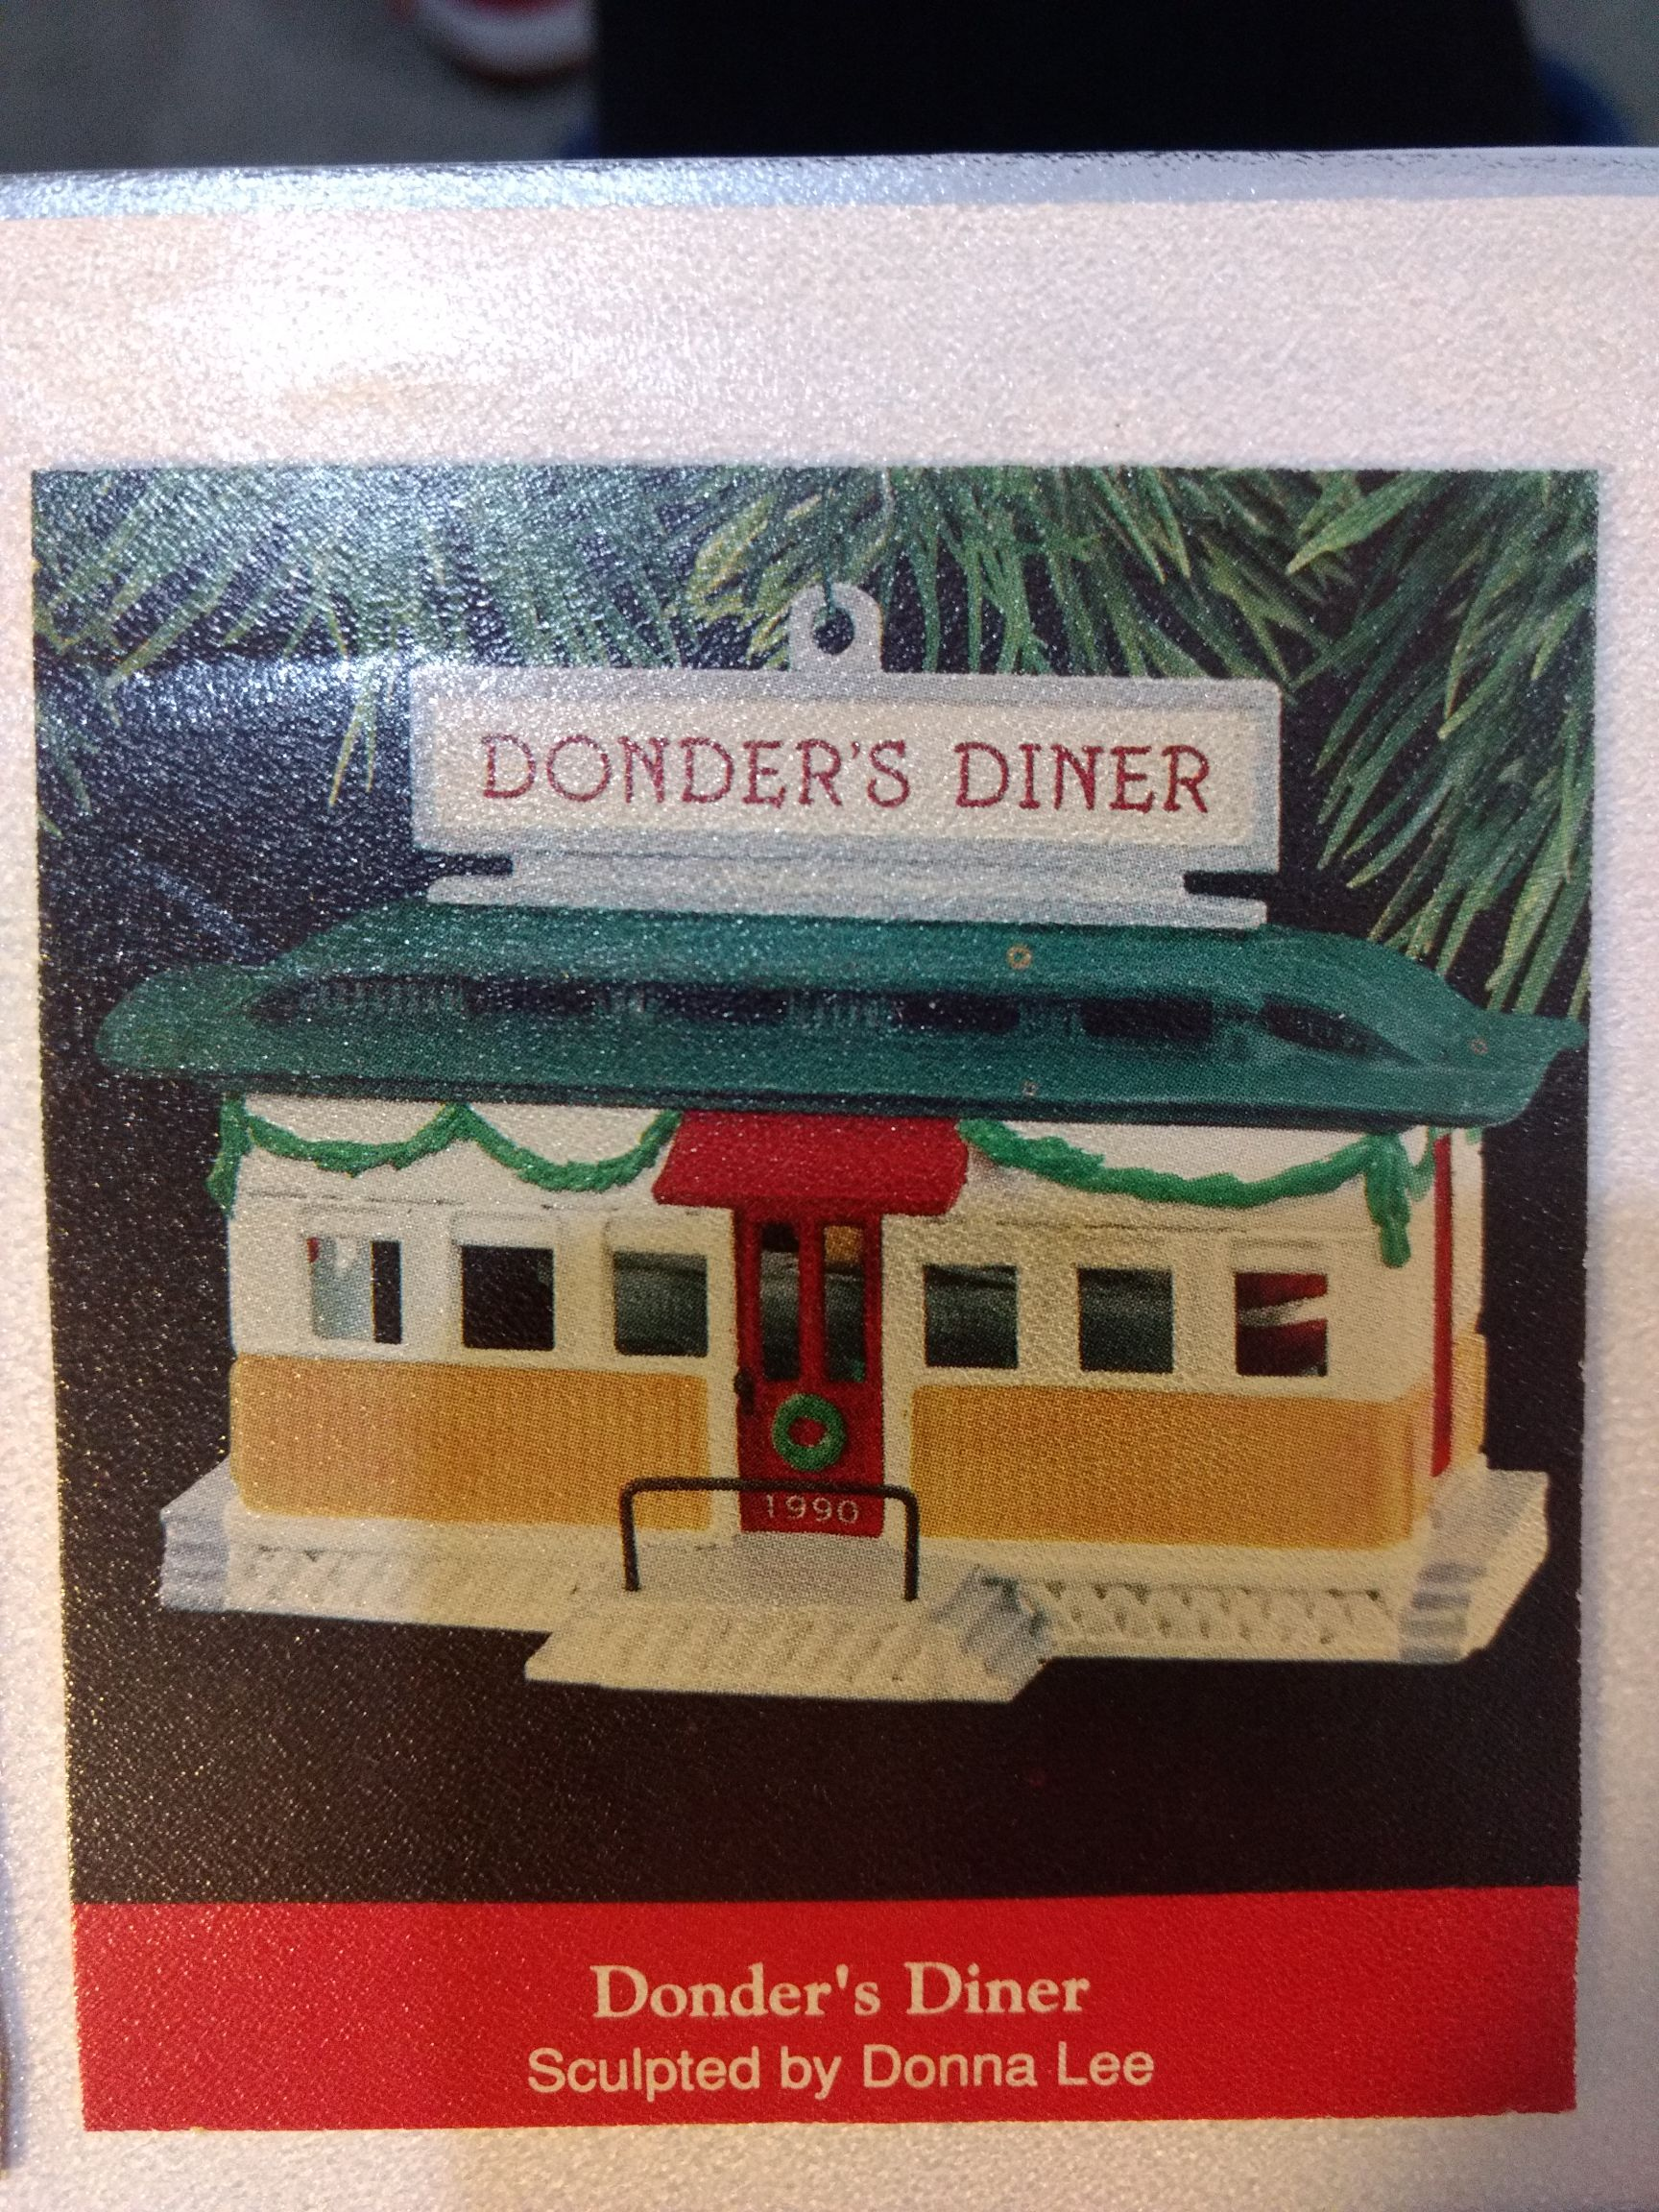 Buildings - Donder's Diner Ornament - Hallmark front image (front cover)